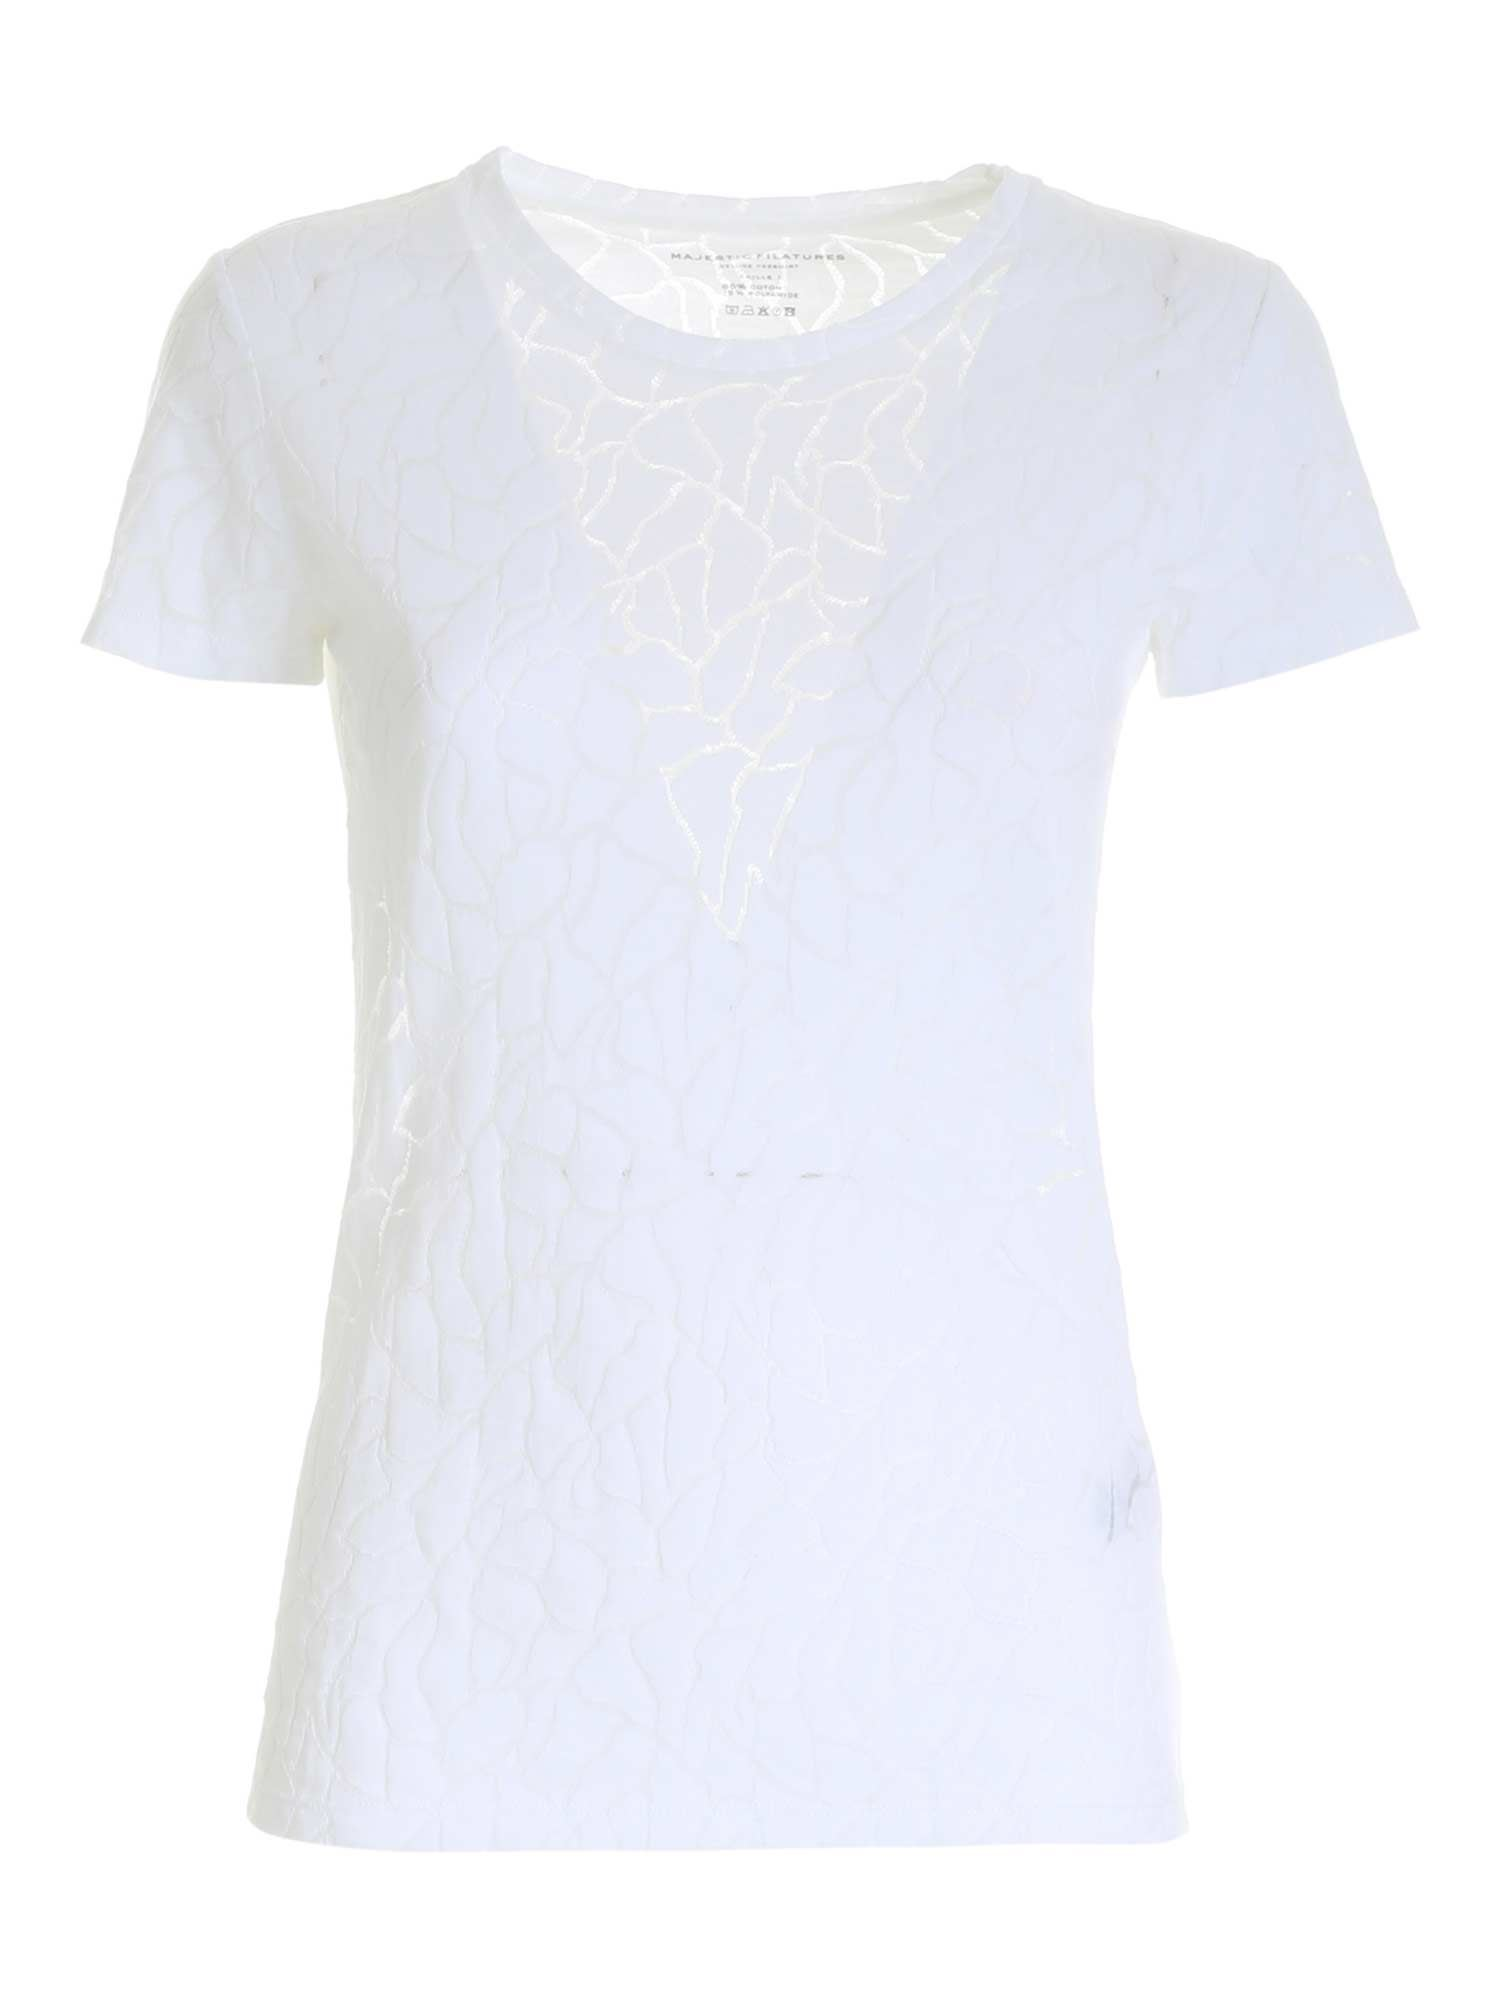 Majestic Cottons MAJESTIC FILATURES SEMI-TRANSPARENT T-SHIRT IN WHITE